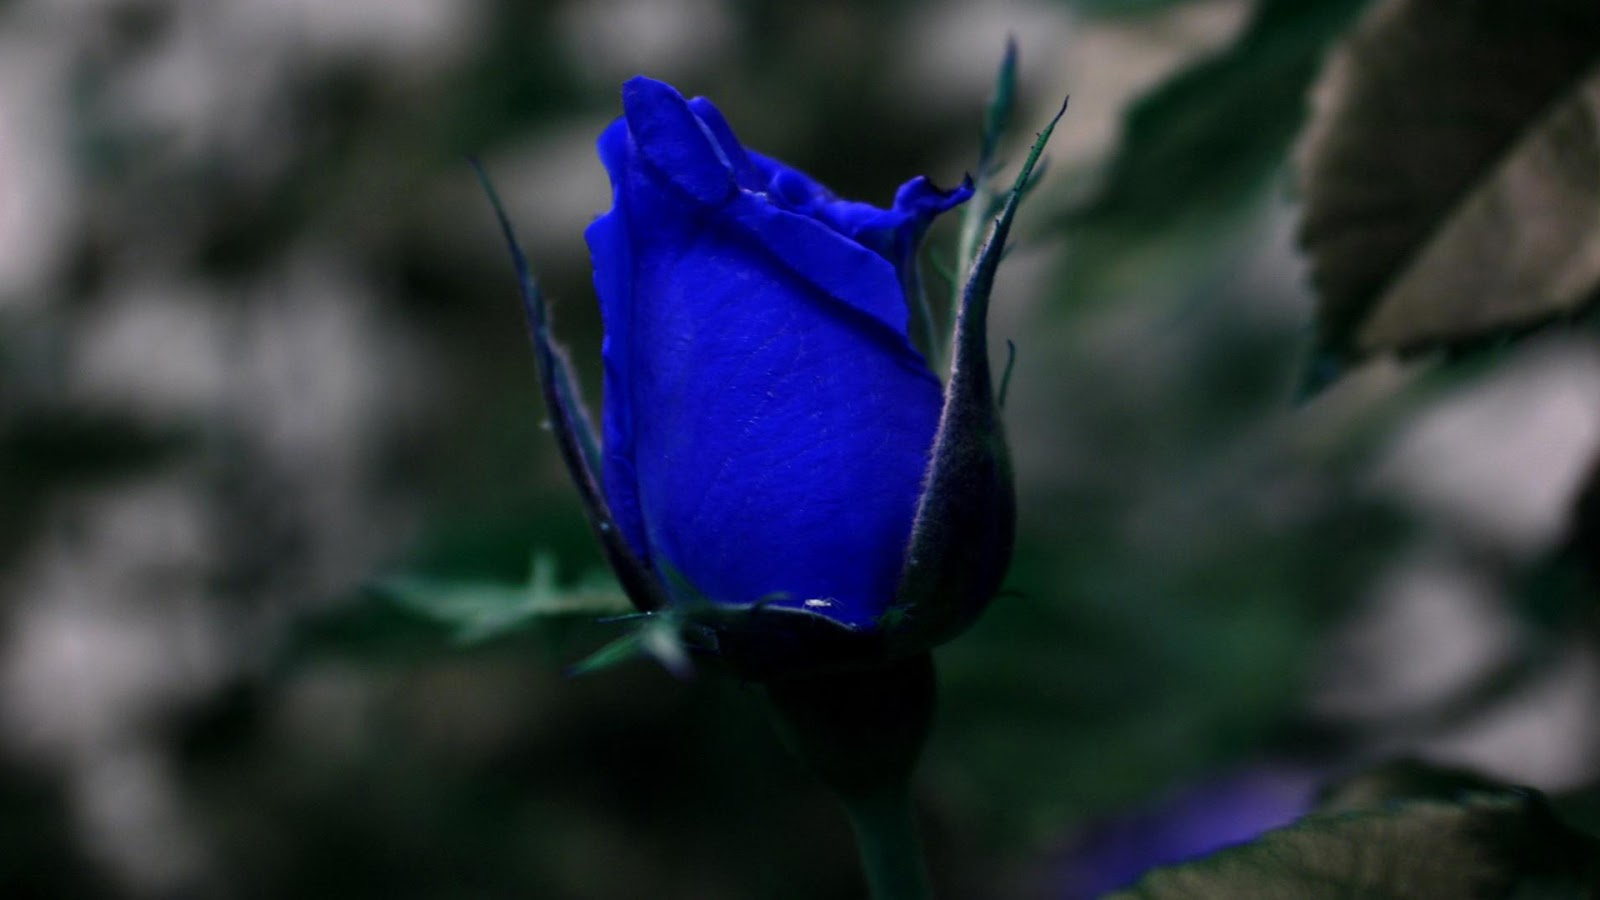 Wallpapers-hub: Green, Blue, Purple And Black Roses ...Are